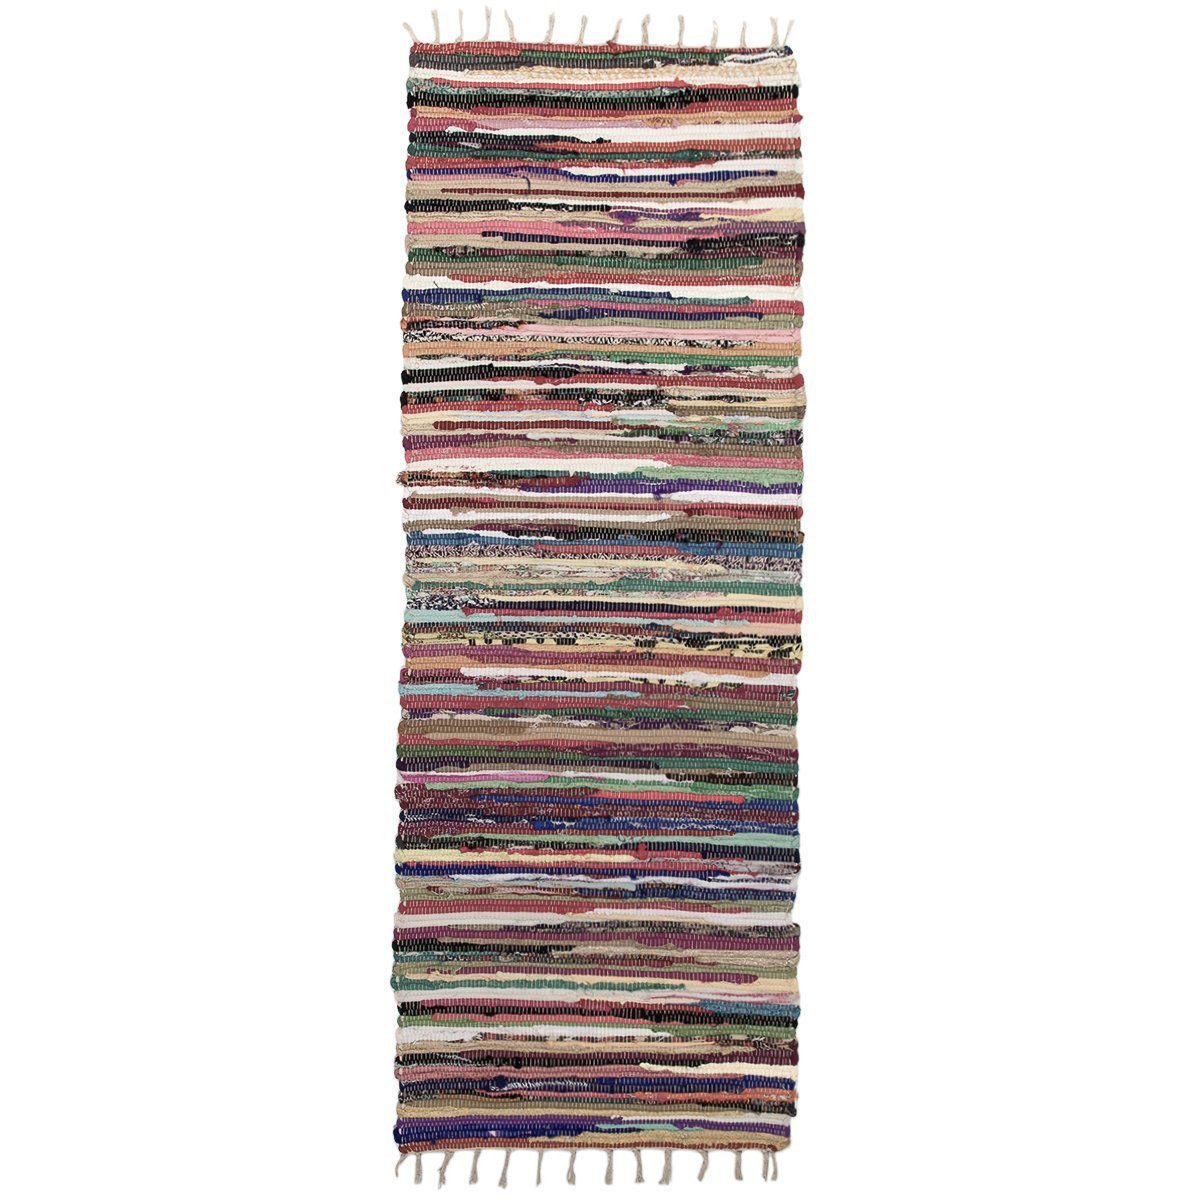 Royal Fiesta Chindi 2 x 6 Long Area Runner Rag Rug Colorful Striped Braided Recycled Fabric For Hallways by Royal